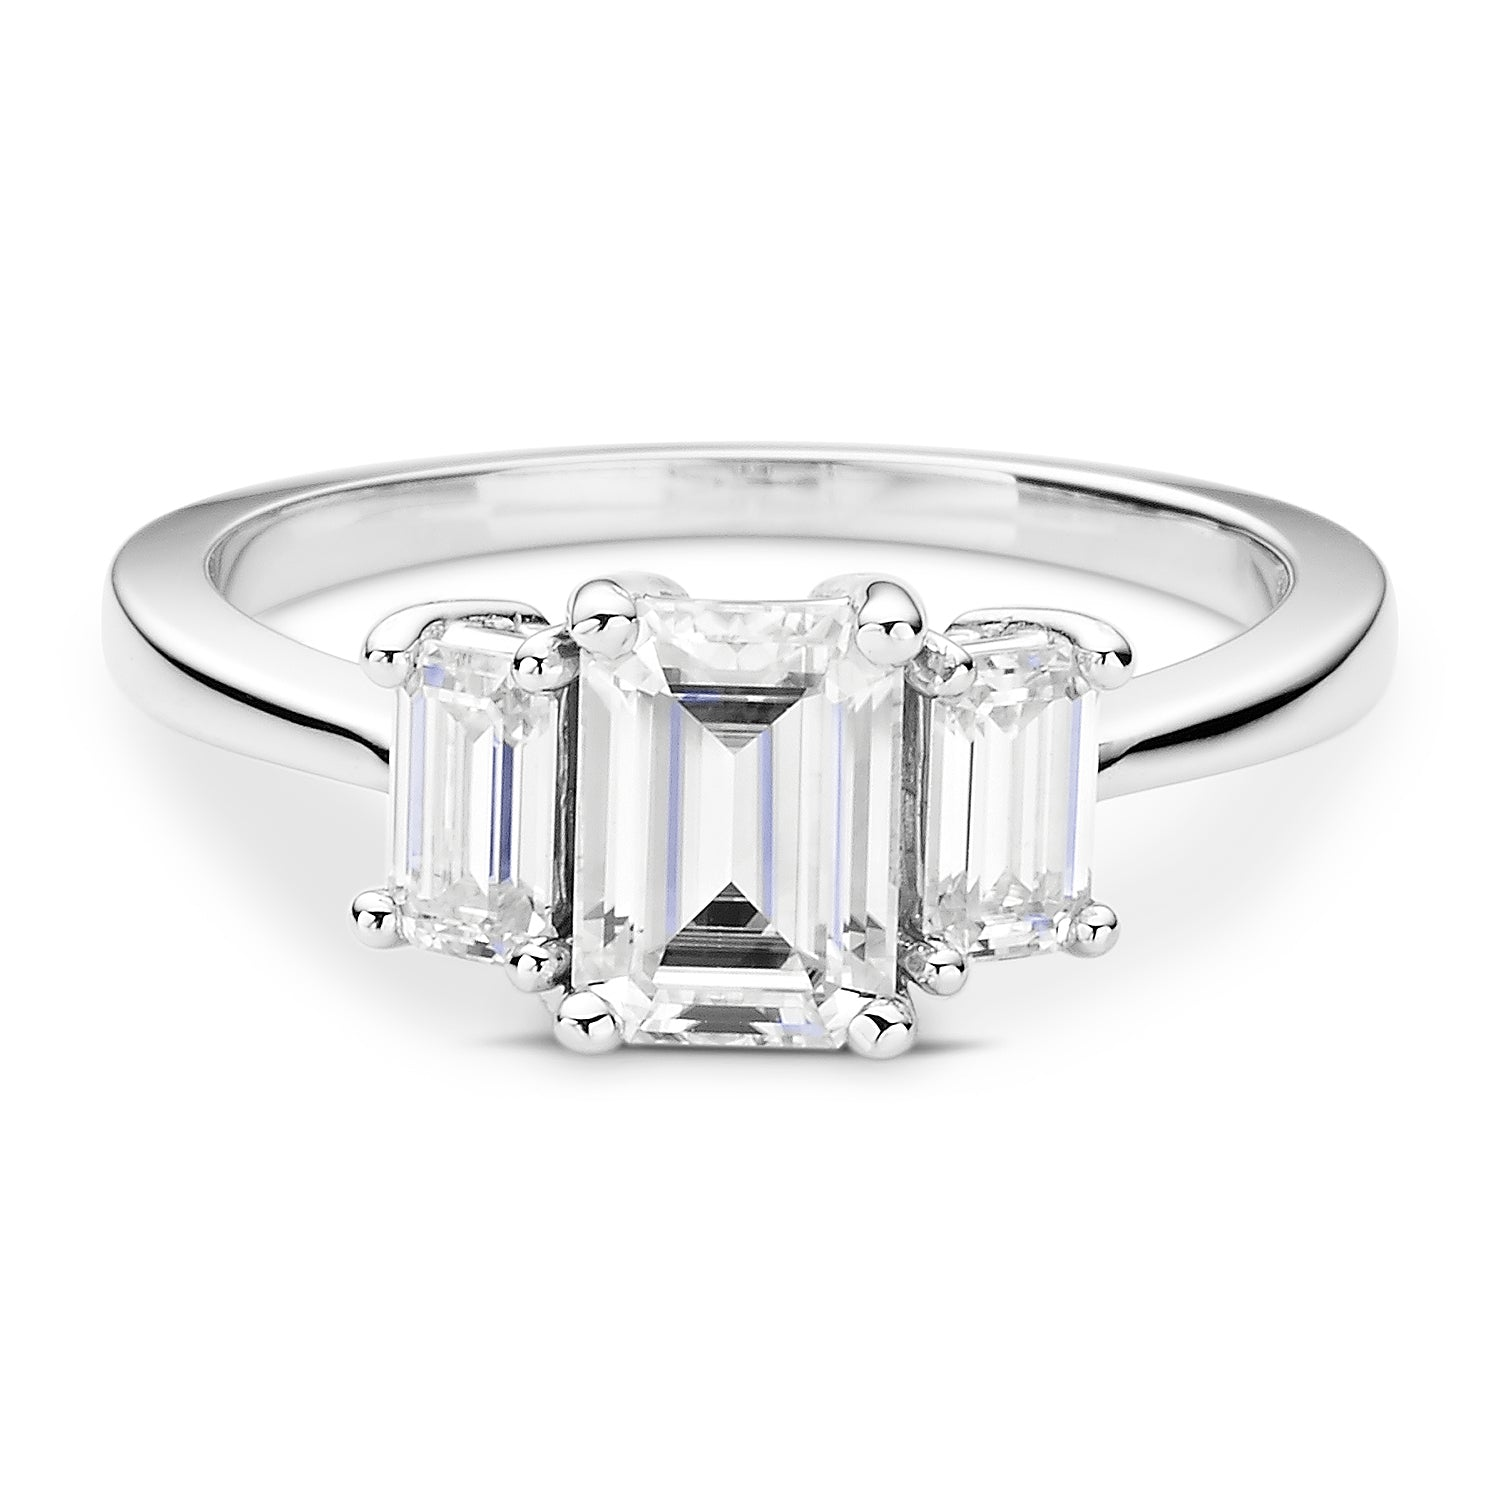 Charles & Colvard Moissanite Emerald Cut Three Stone Ring in White Gold-612941 - Jewelry by Johan